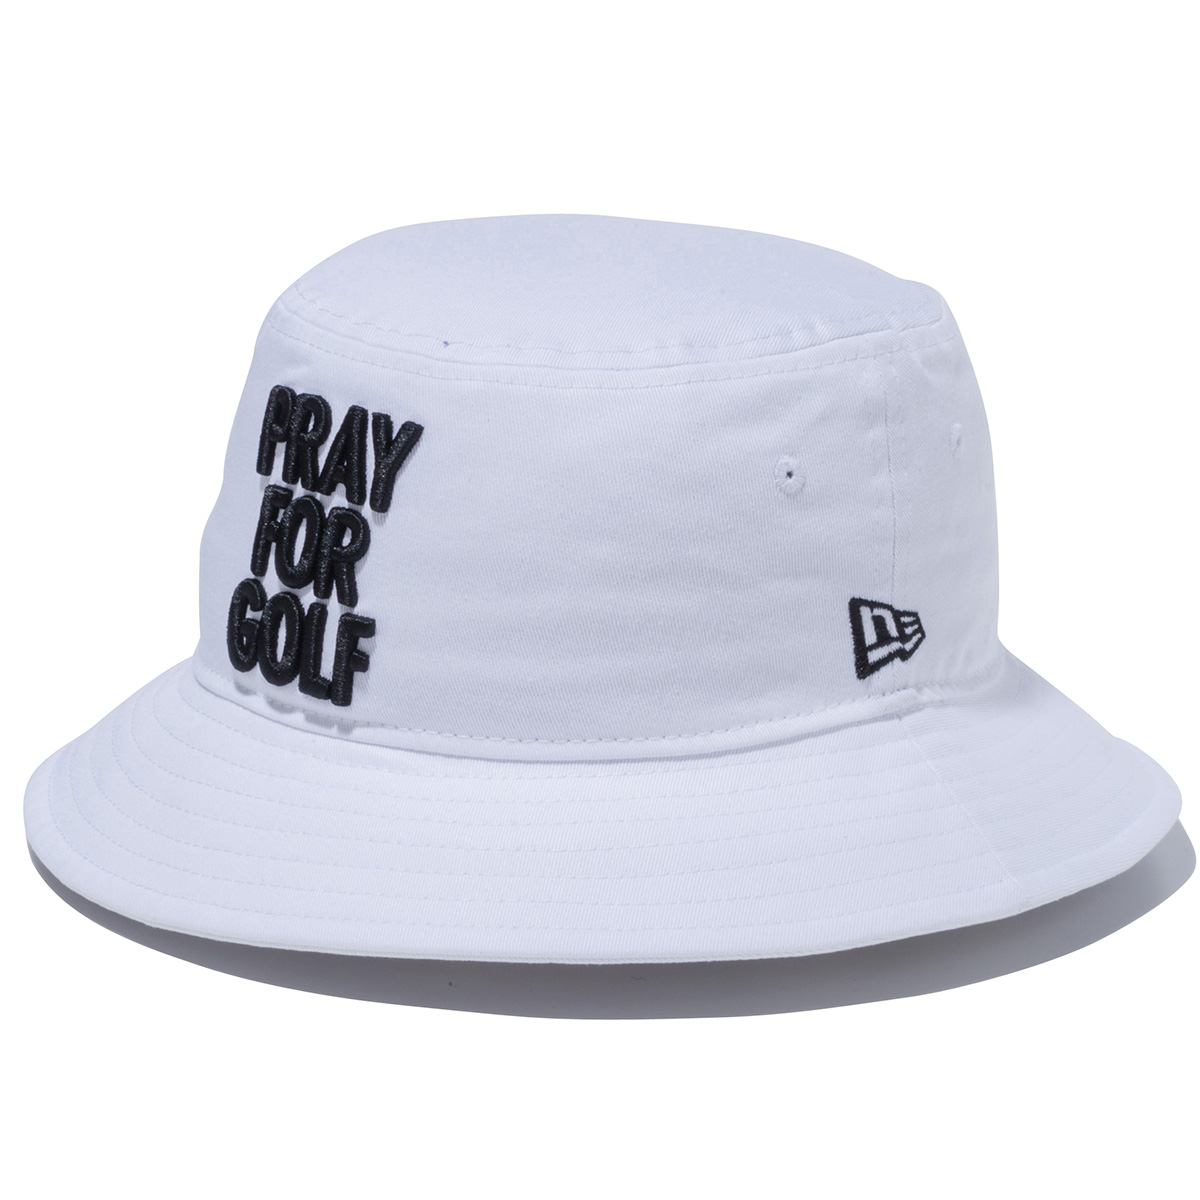 GOLF BUCKET01 PRAY FOR GOLF ハット